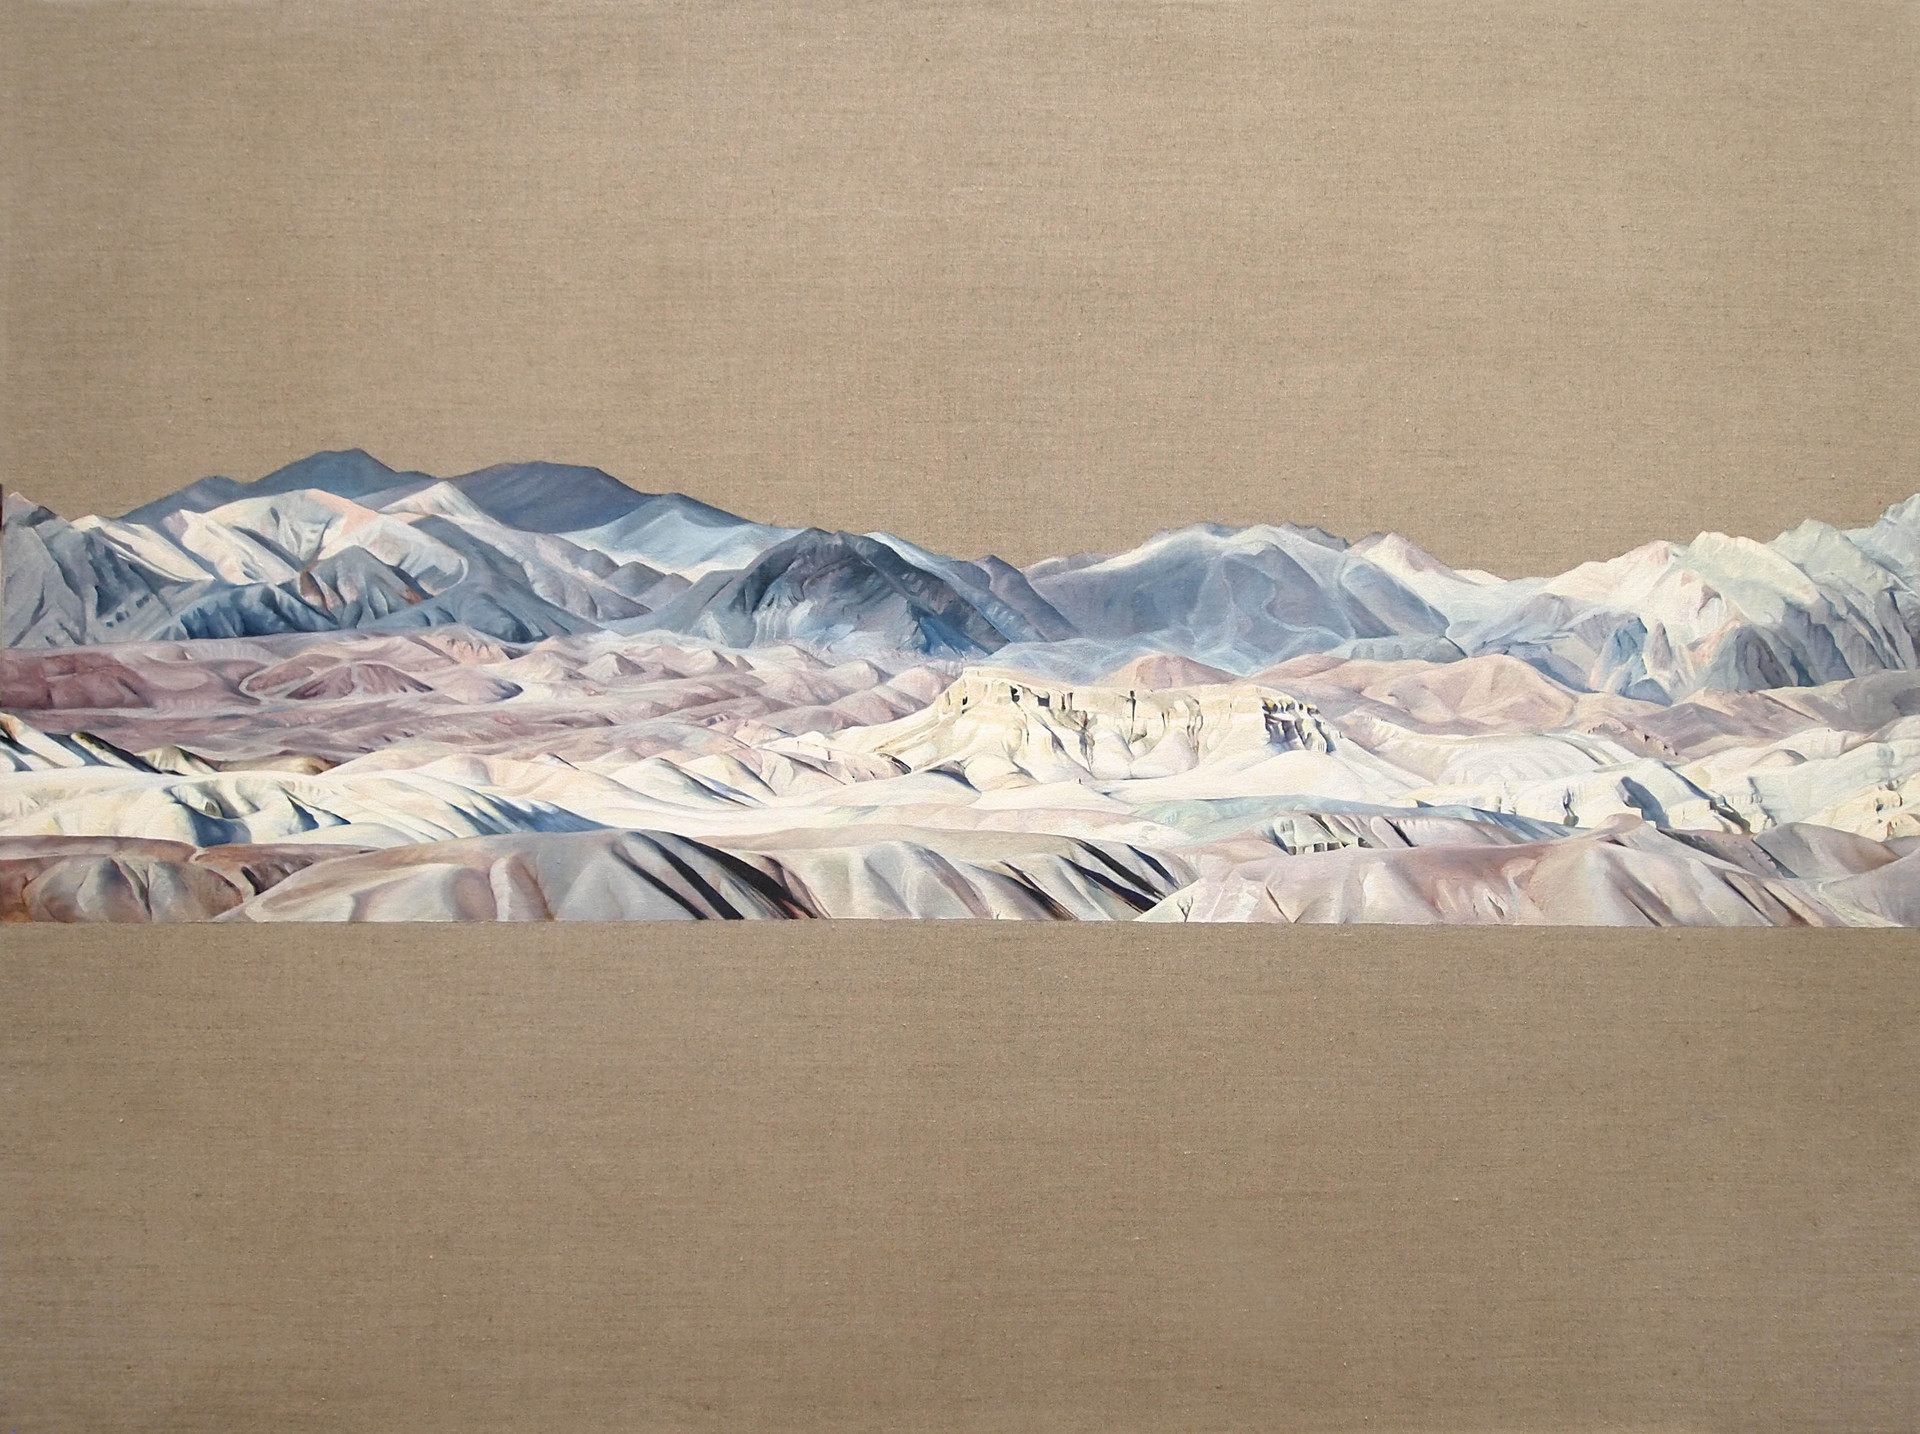 Death Valley 2, Oil on Linen, 36x48 inches